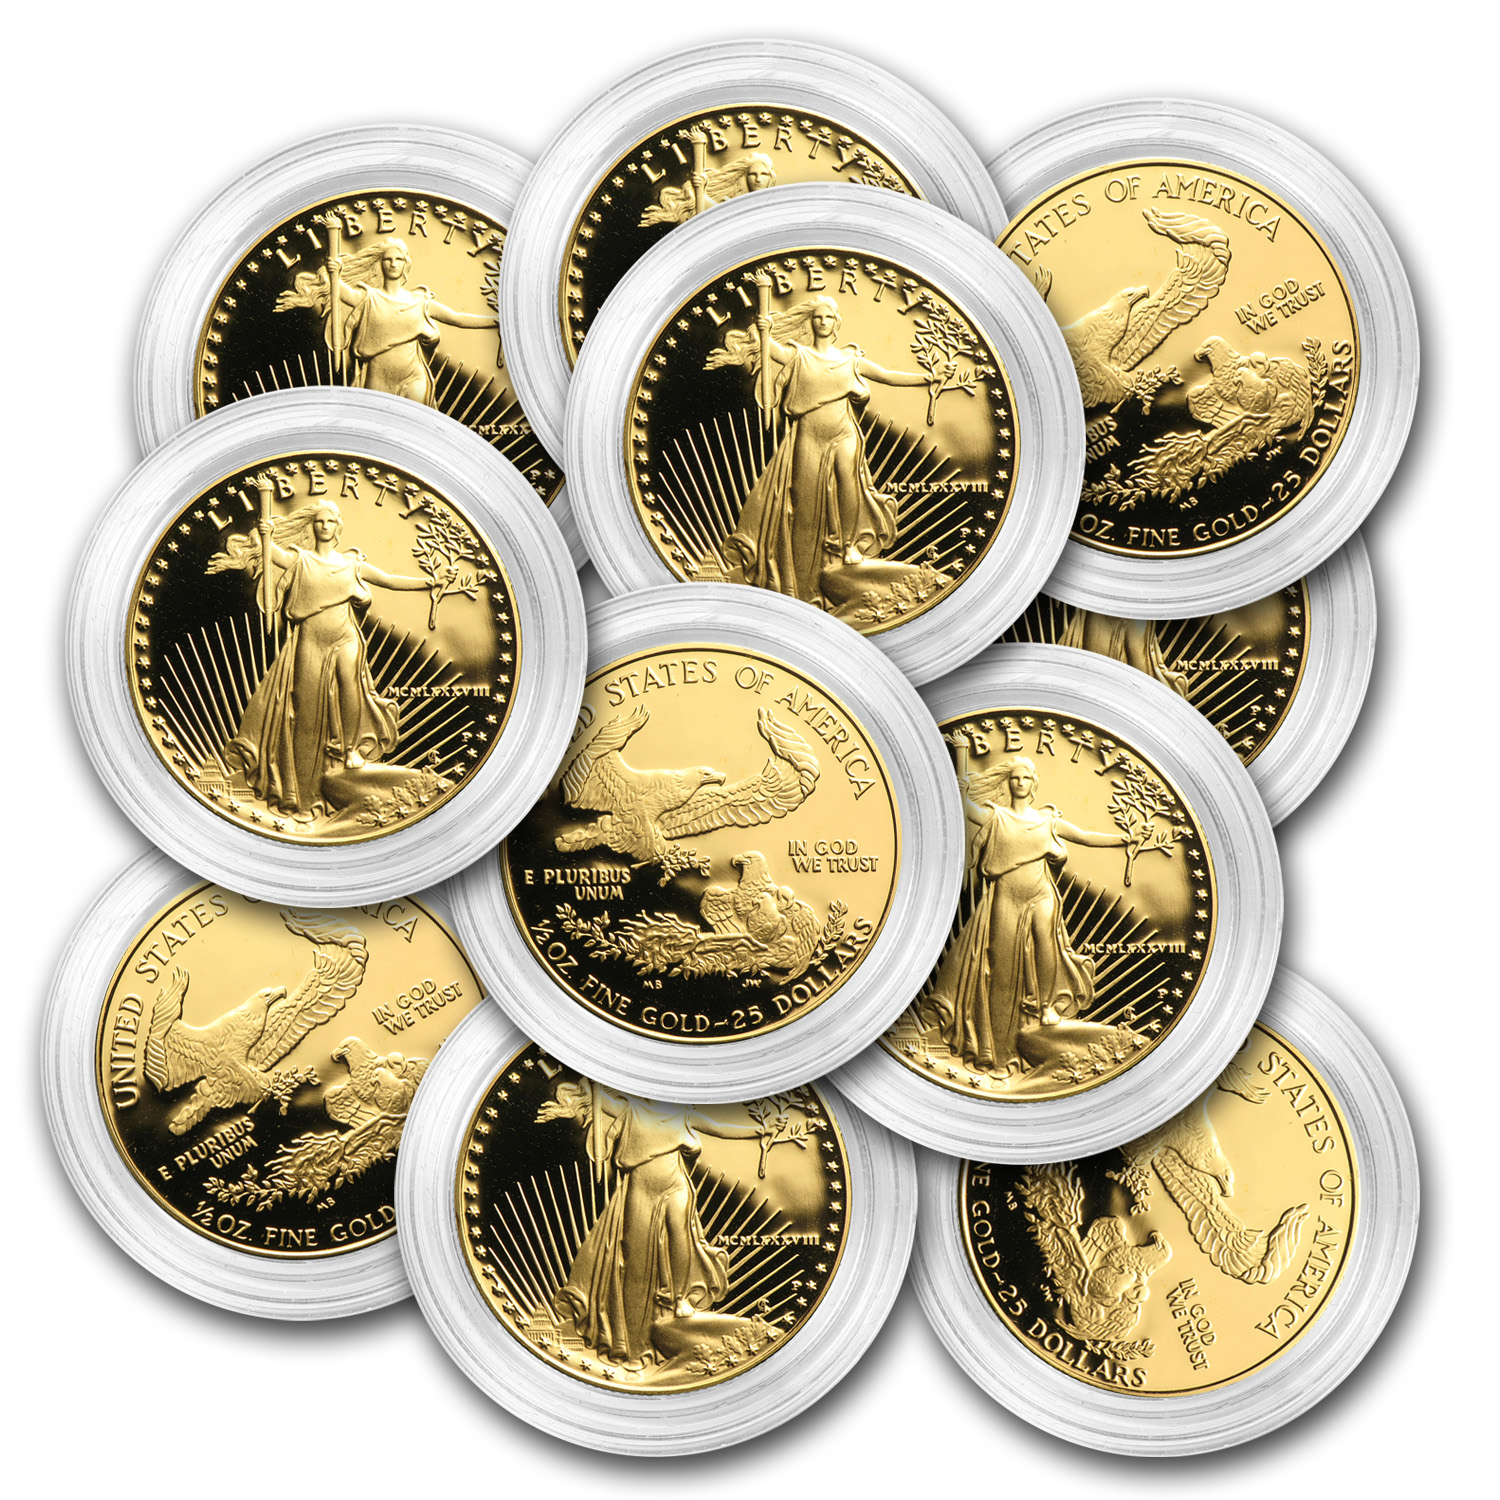 1/2 oz Proof Gold American Eagle (Capsule Only)